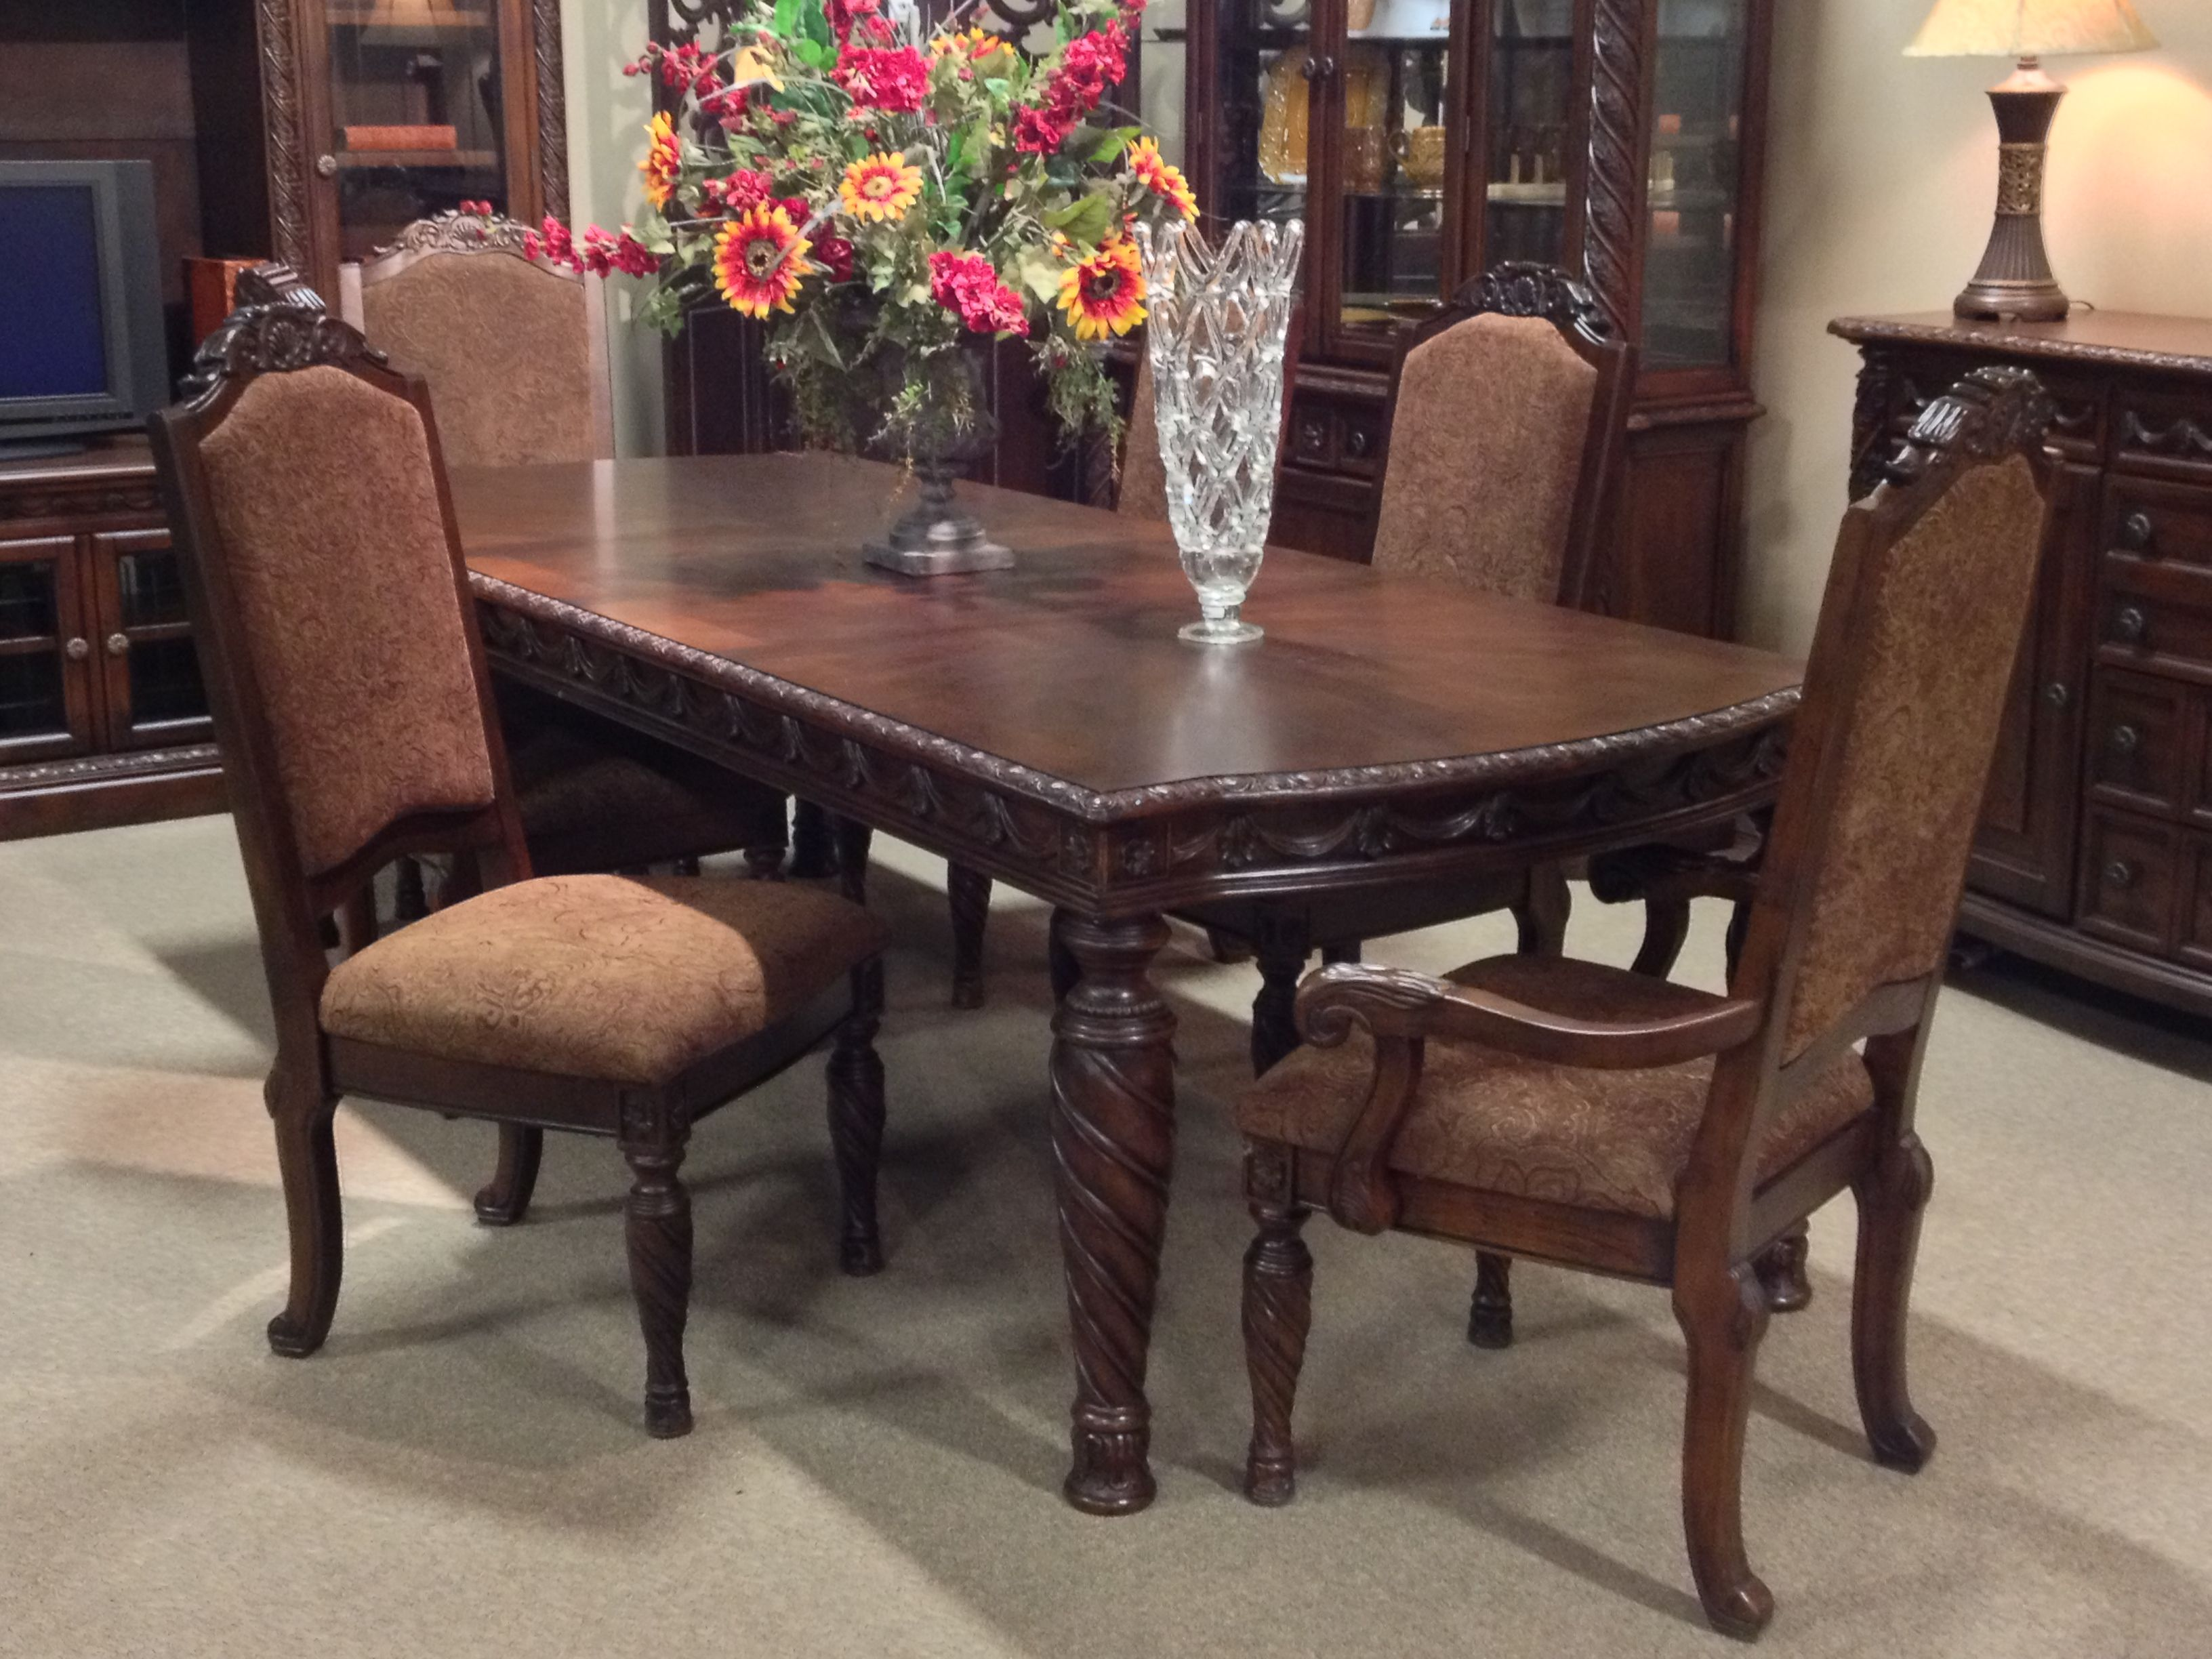 North shore 7 piece dining room set at ashley furniture in tricities dining room ideas - Ashley north shore dining room set ...